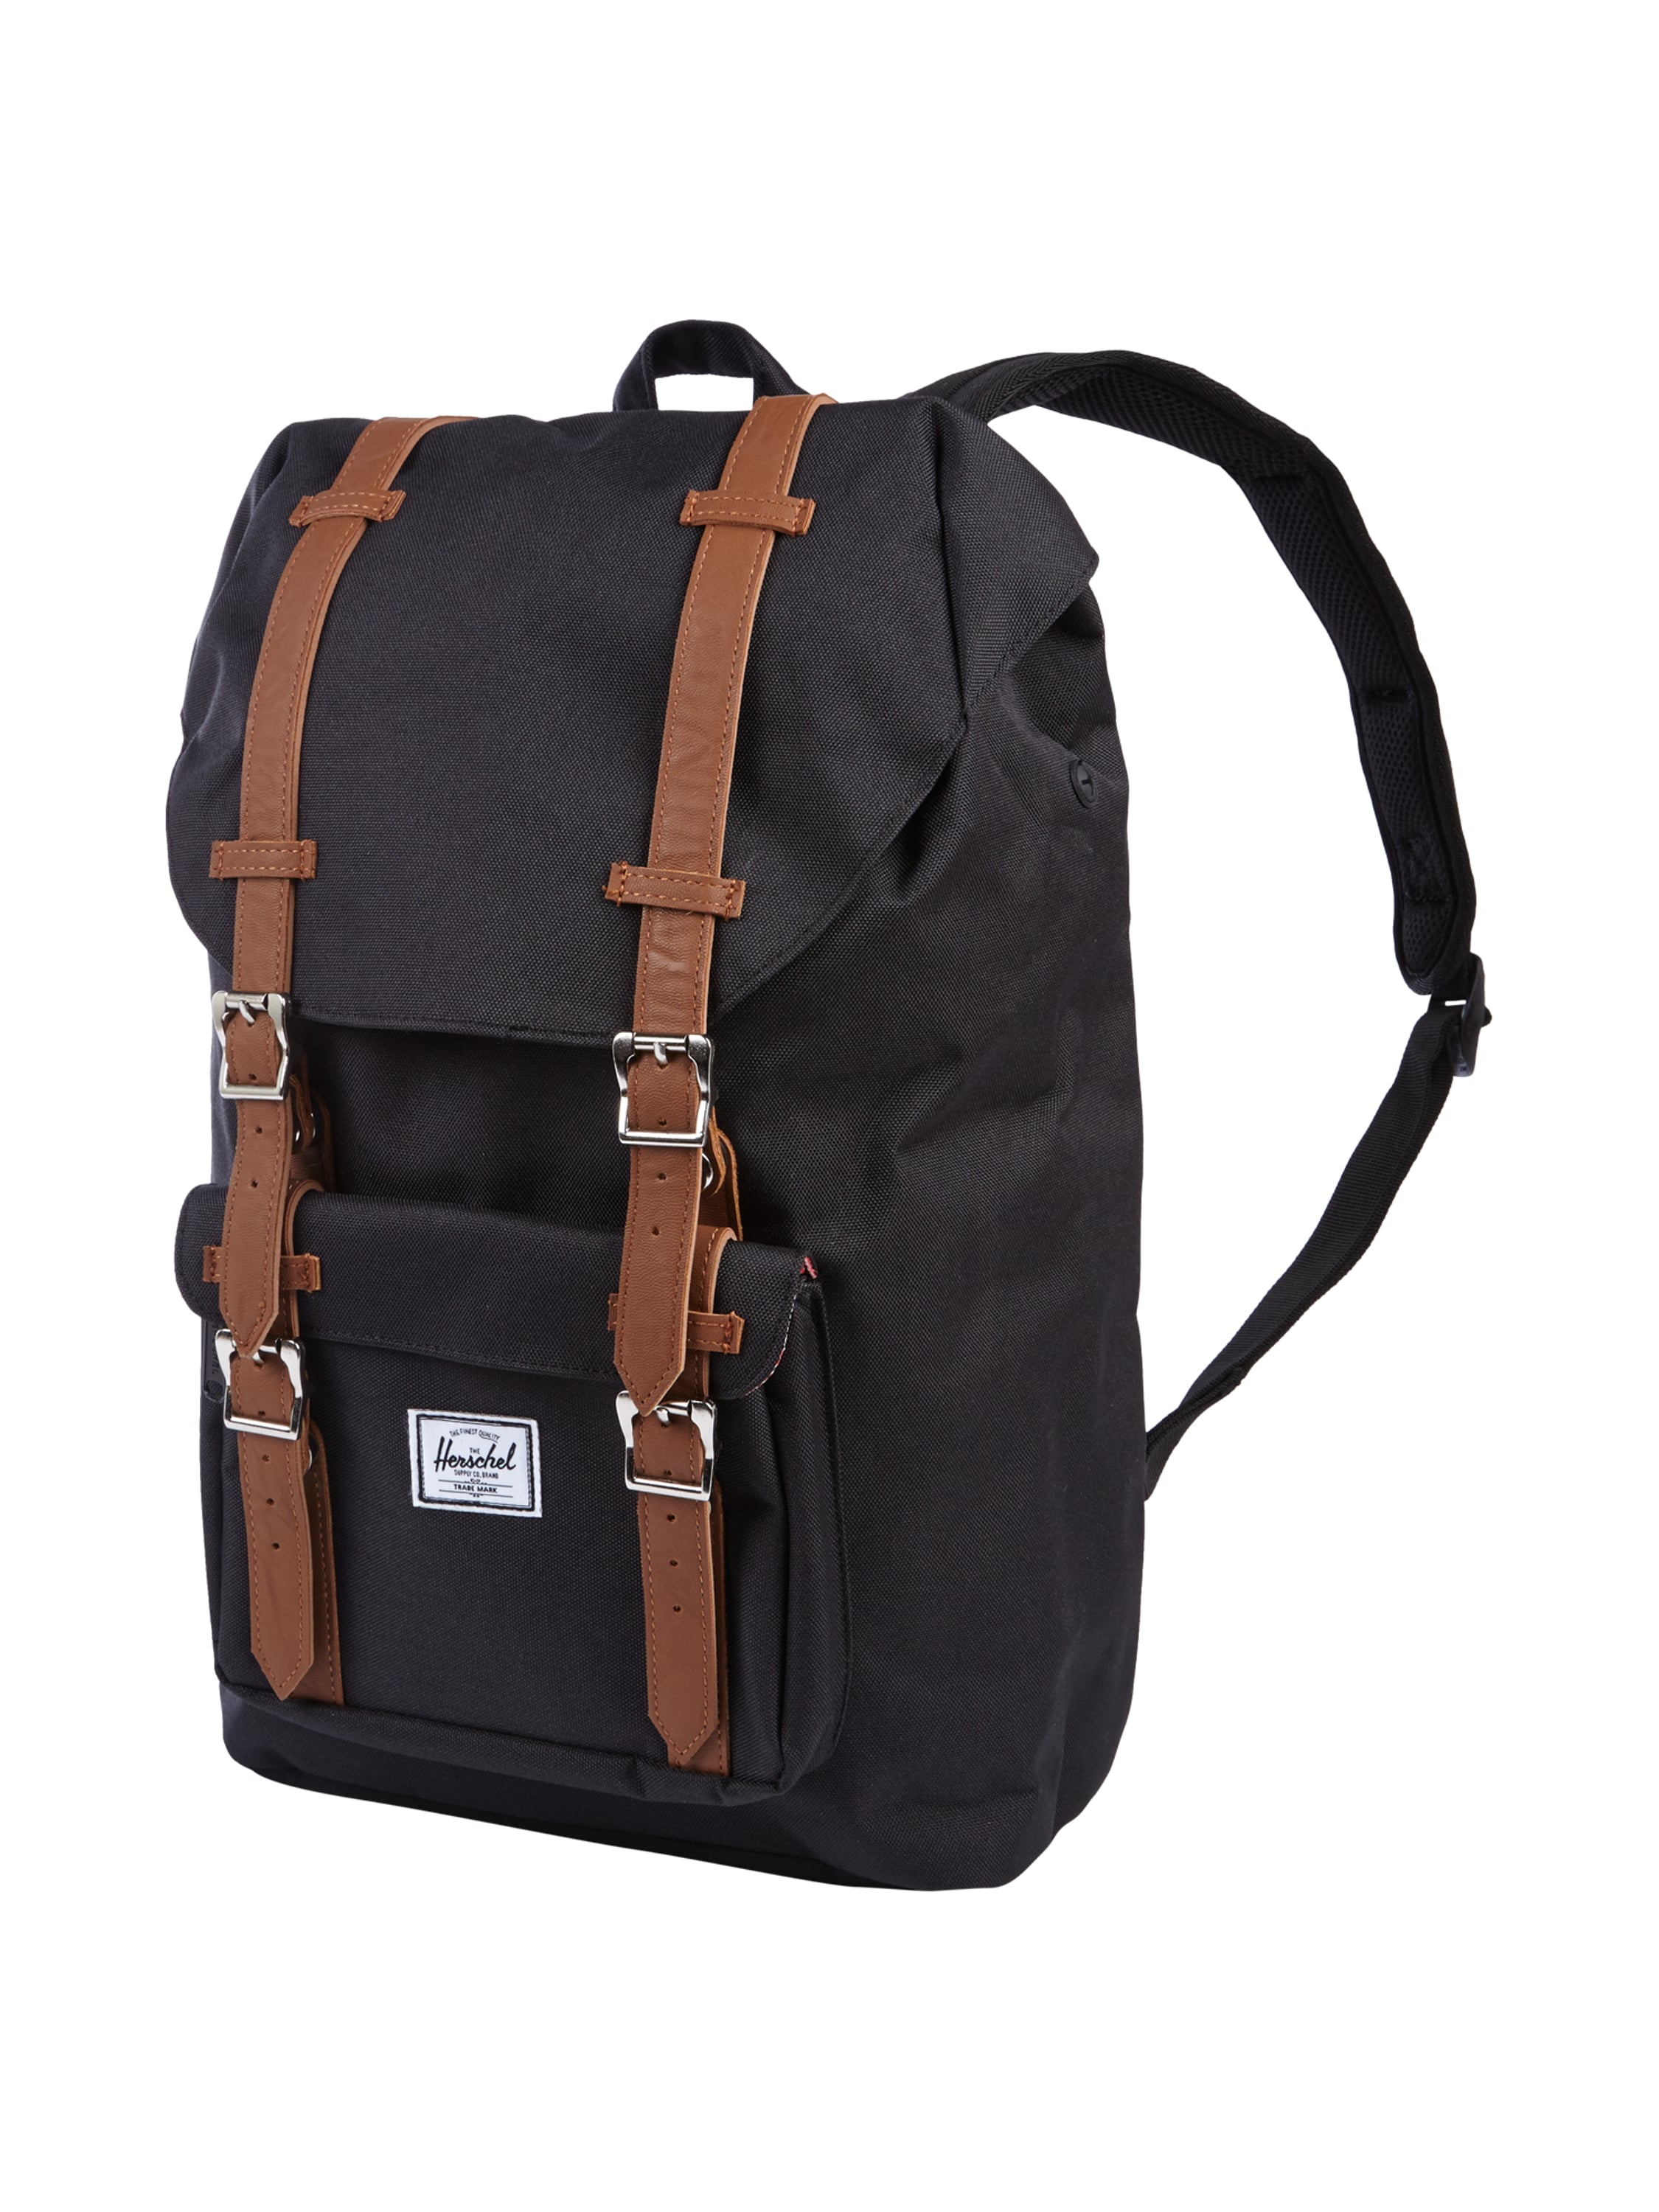 herschel rucksack mit laptopfach in grau schwarz online kaufen 9514254 p c online shop. Black Bedroom Furniture Sets. Home Design Ideas